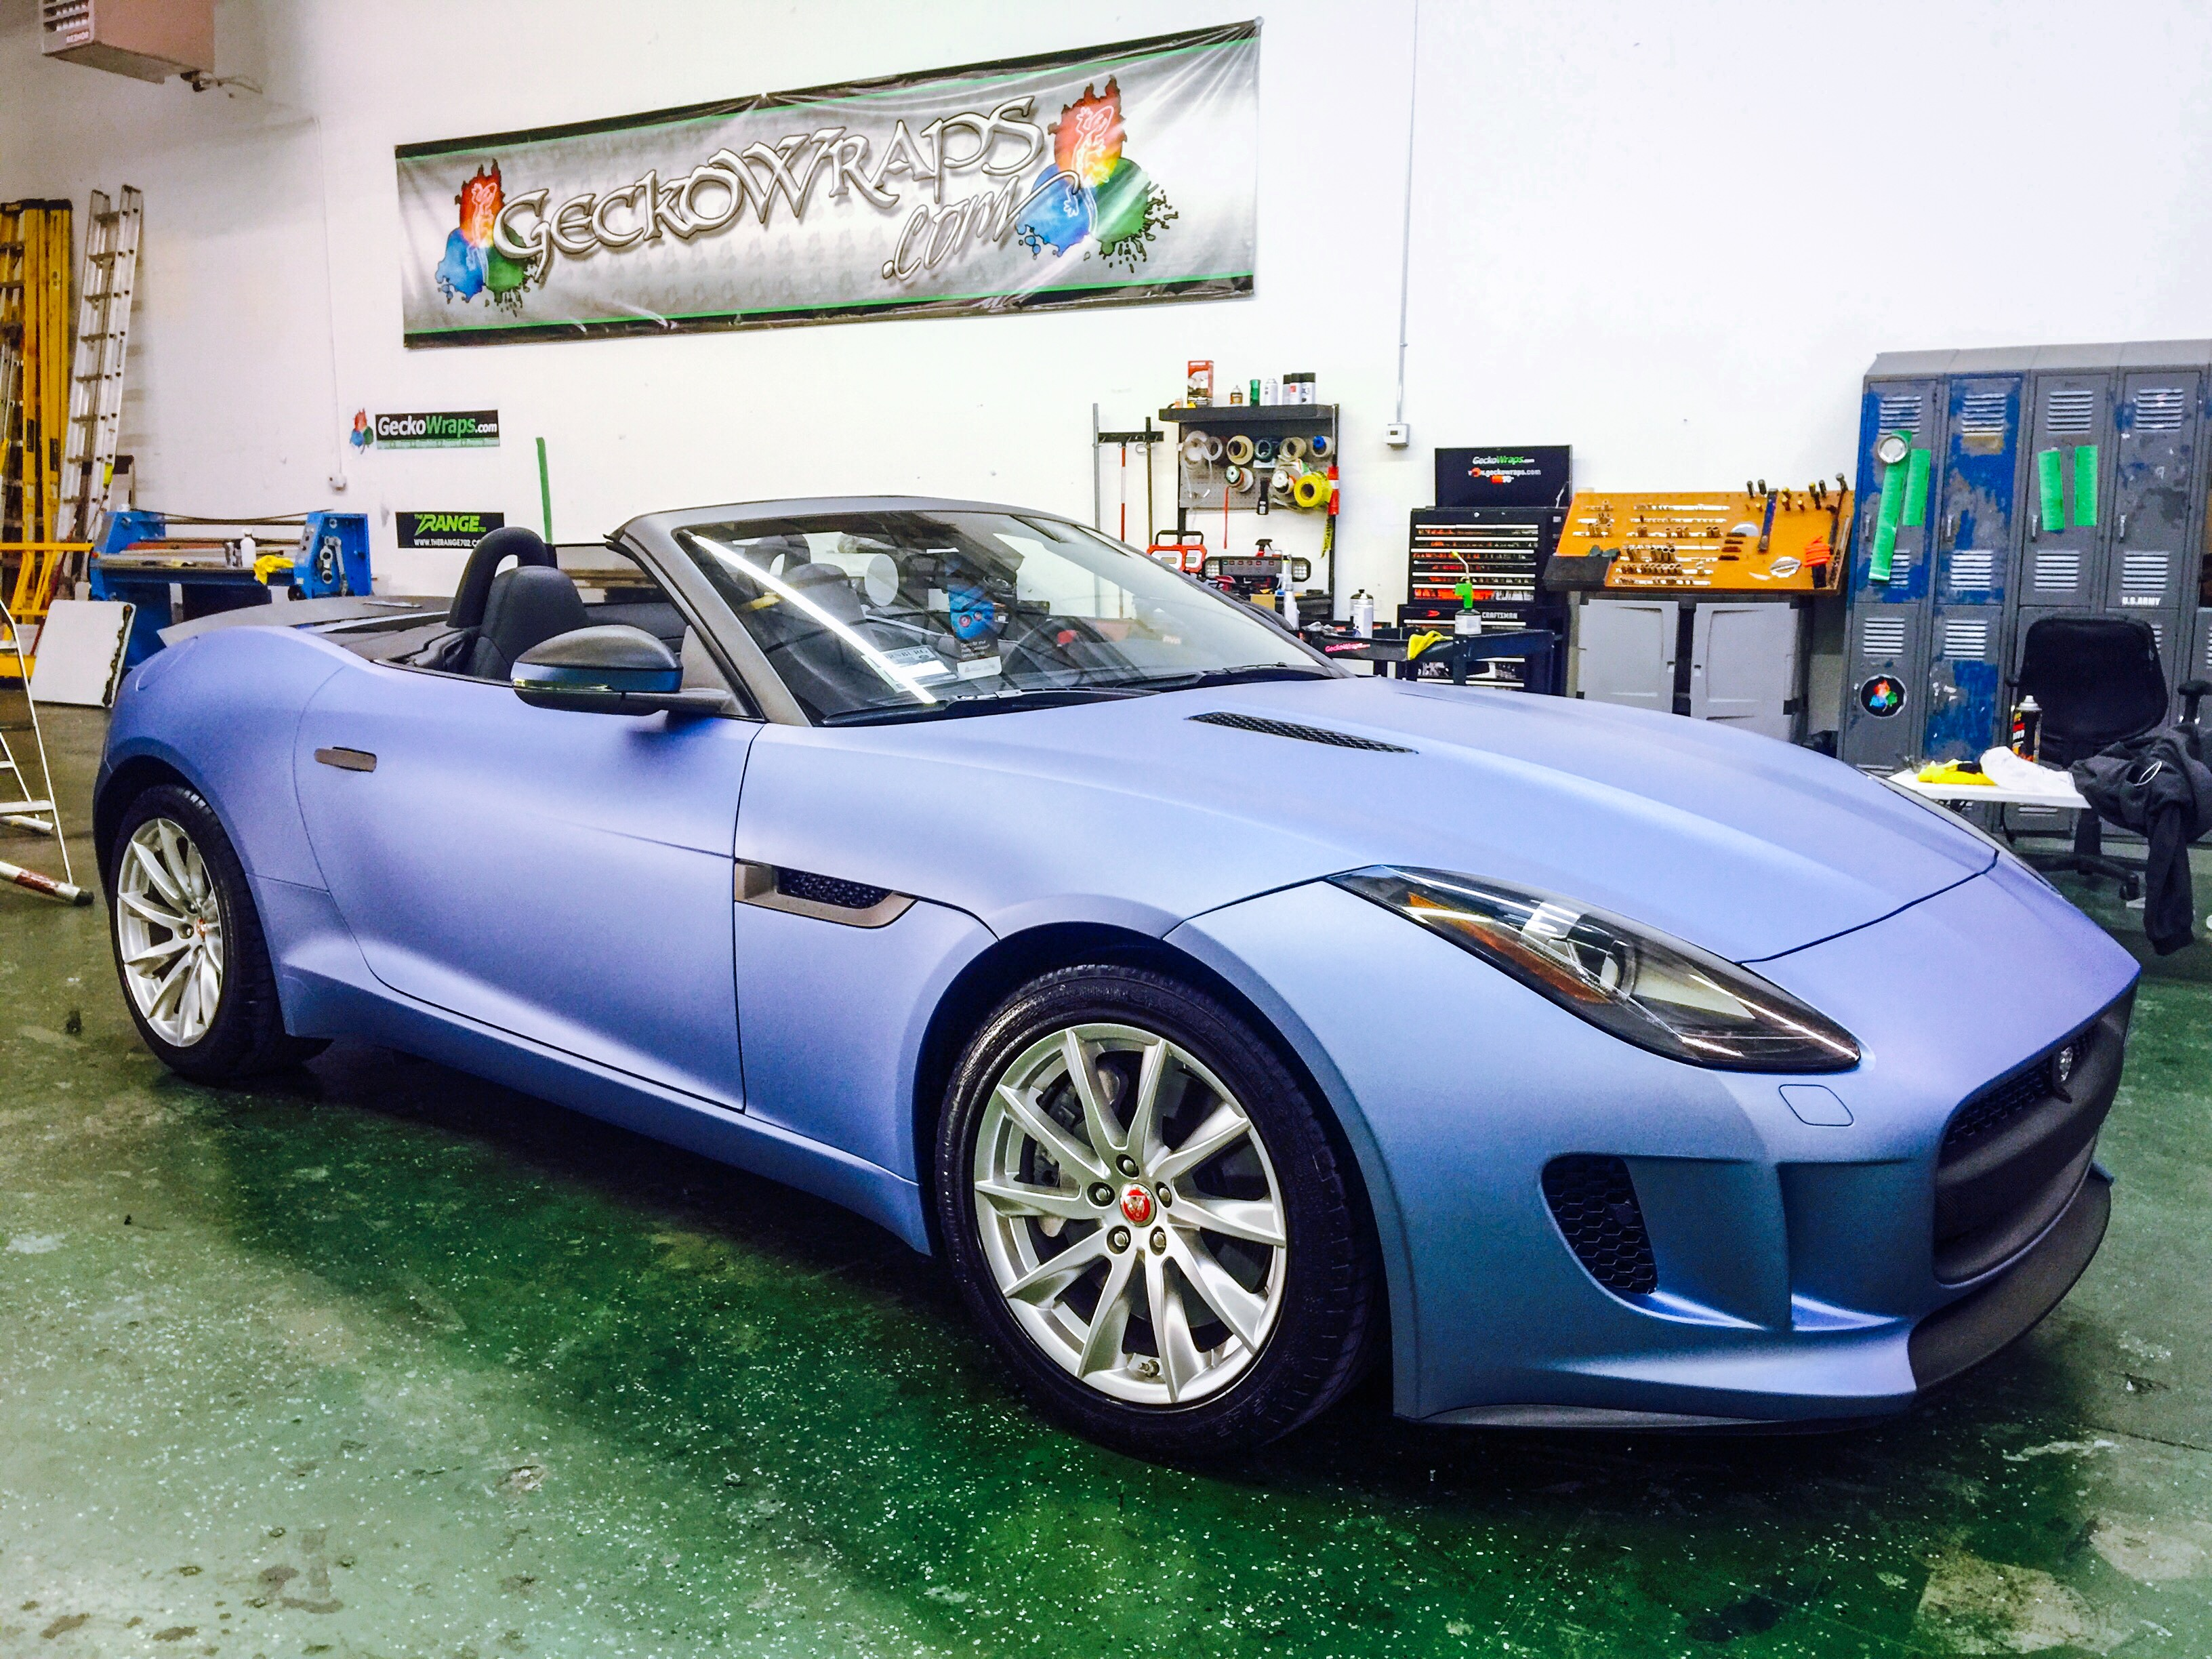 Matte Metallic Powder Blue Jaguar - GeckoWraps Las Vegas ...